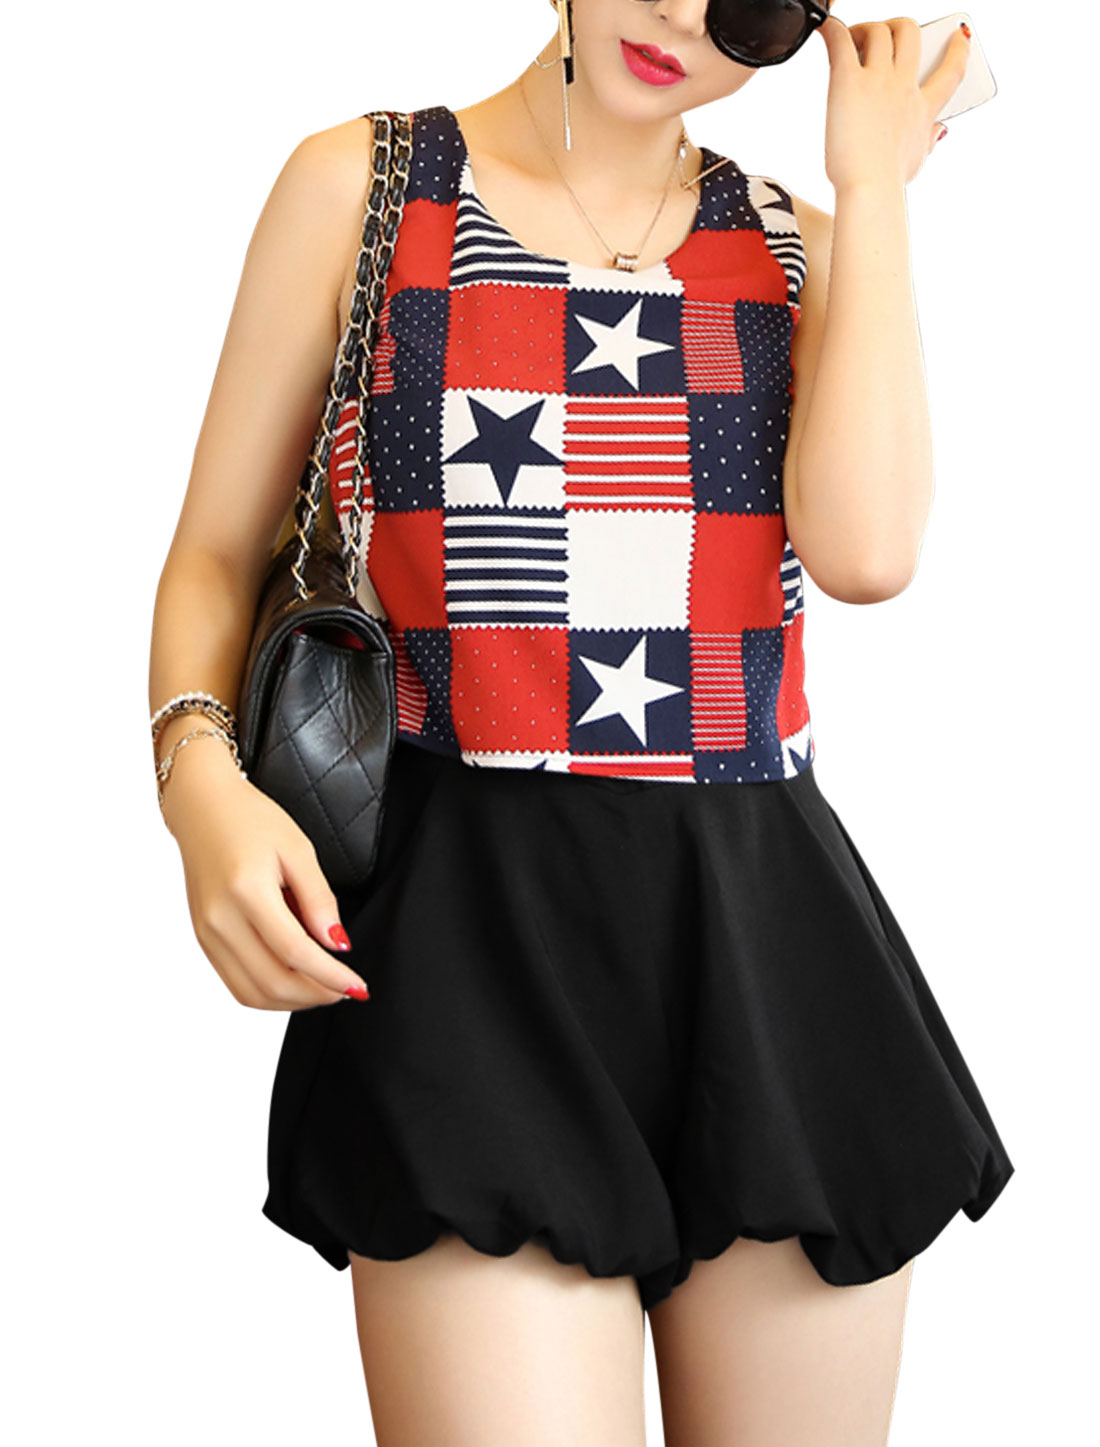 Lady Sleeveless Chiffon Panel British Flag Pattern Romper Red Black XS